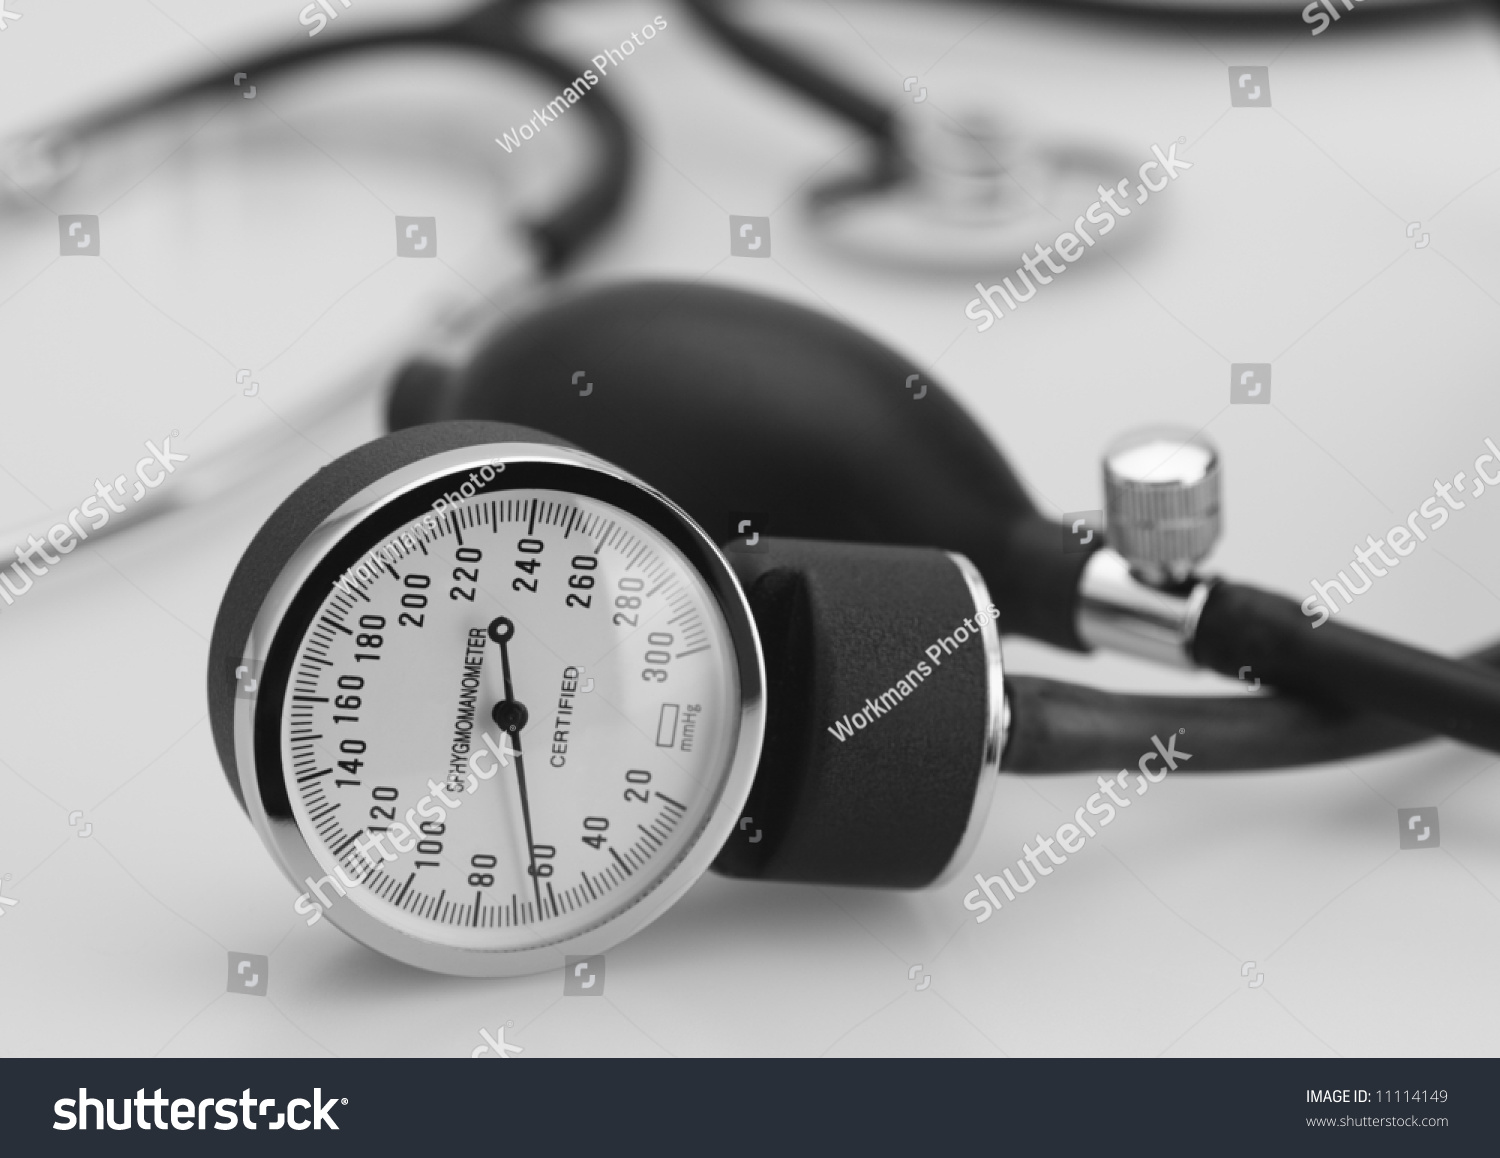 Pressure Measuring Instruments : Sphygmomanometer stethoscope medical tool pressure measure